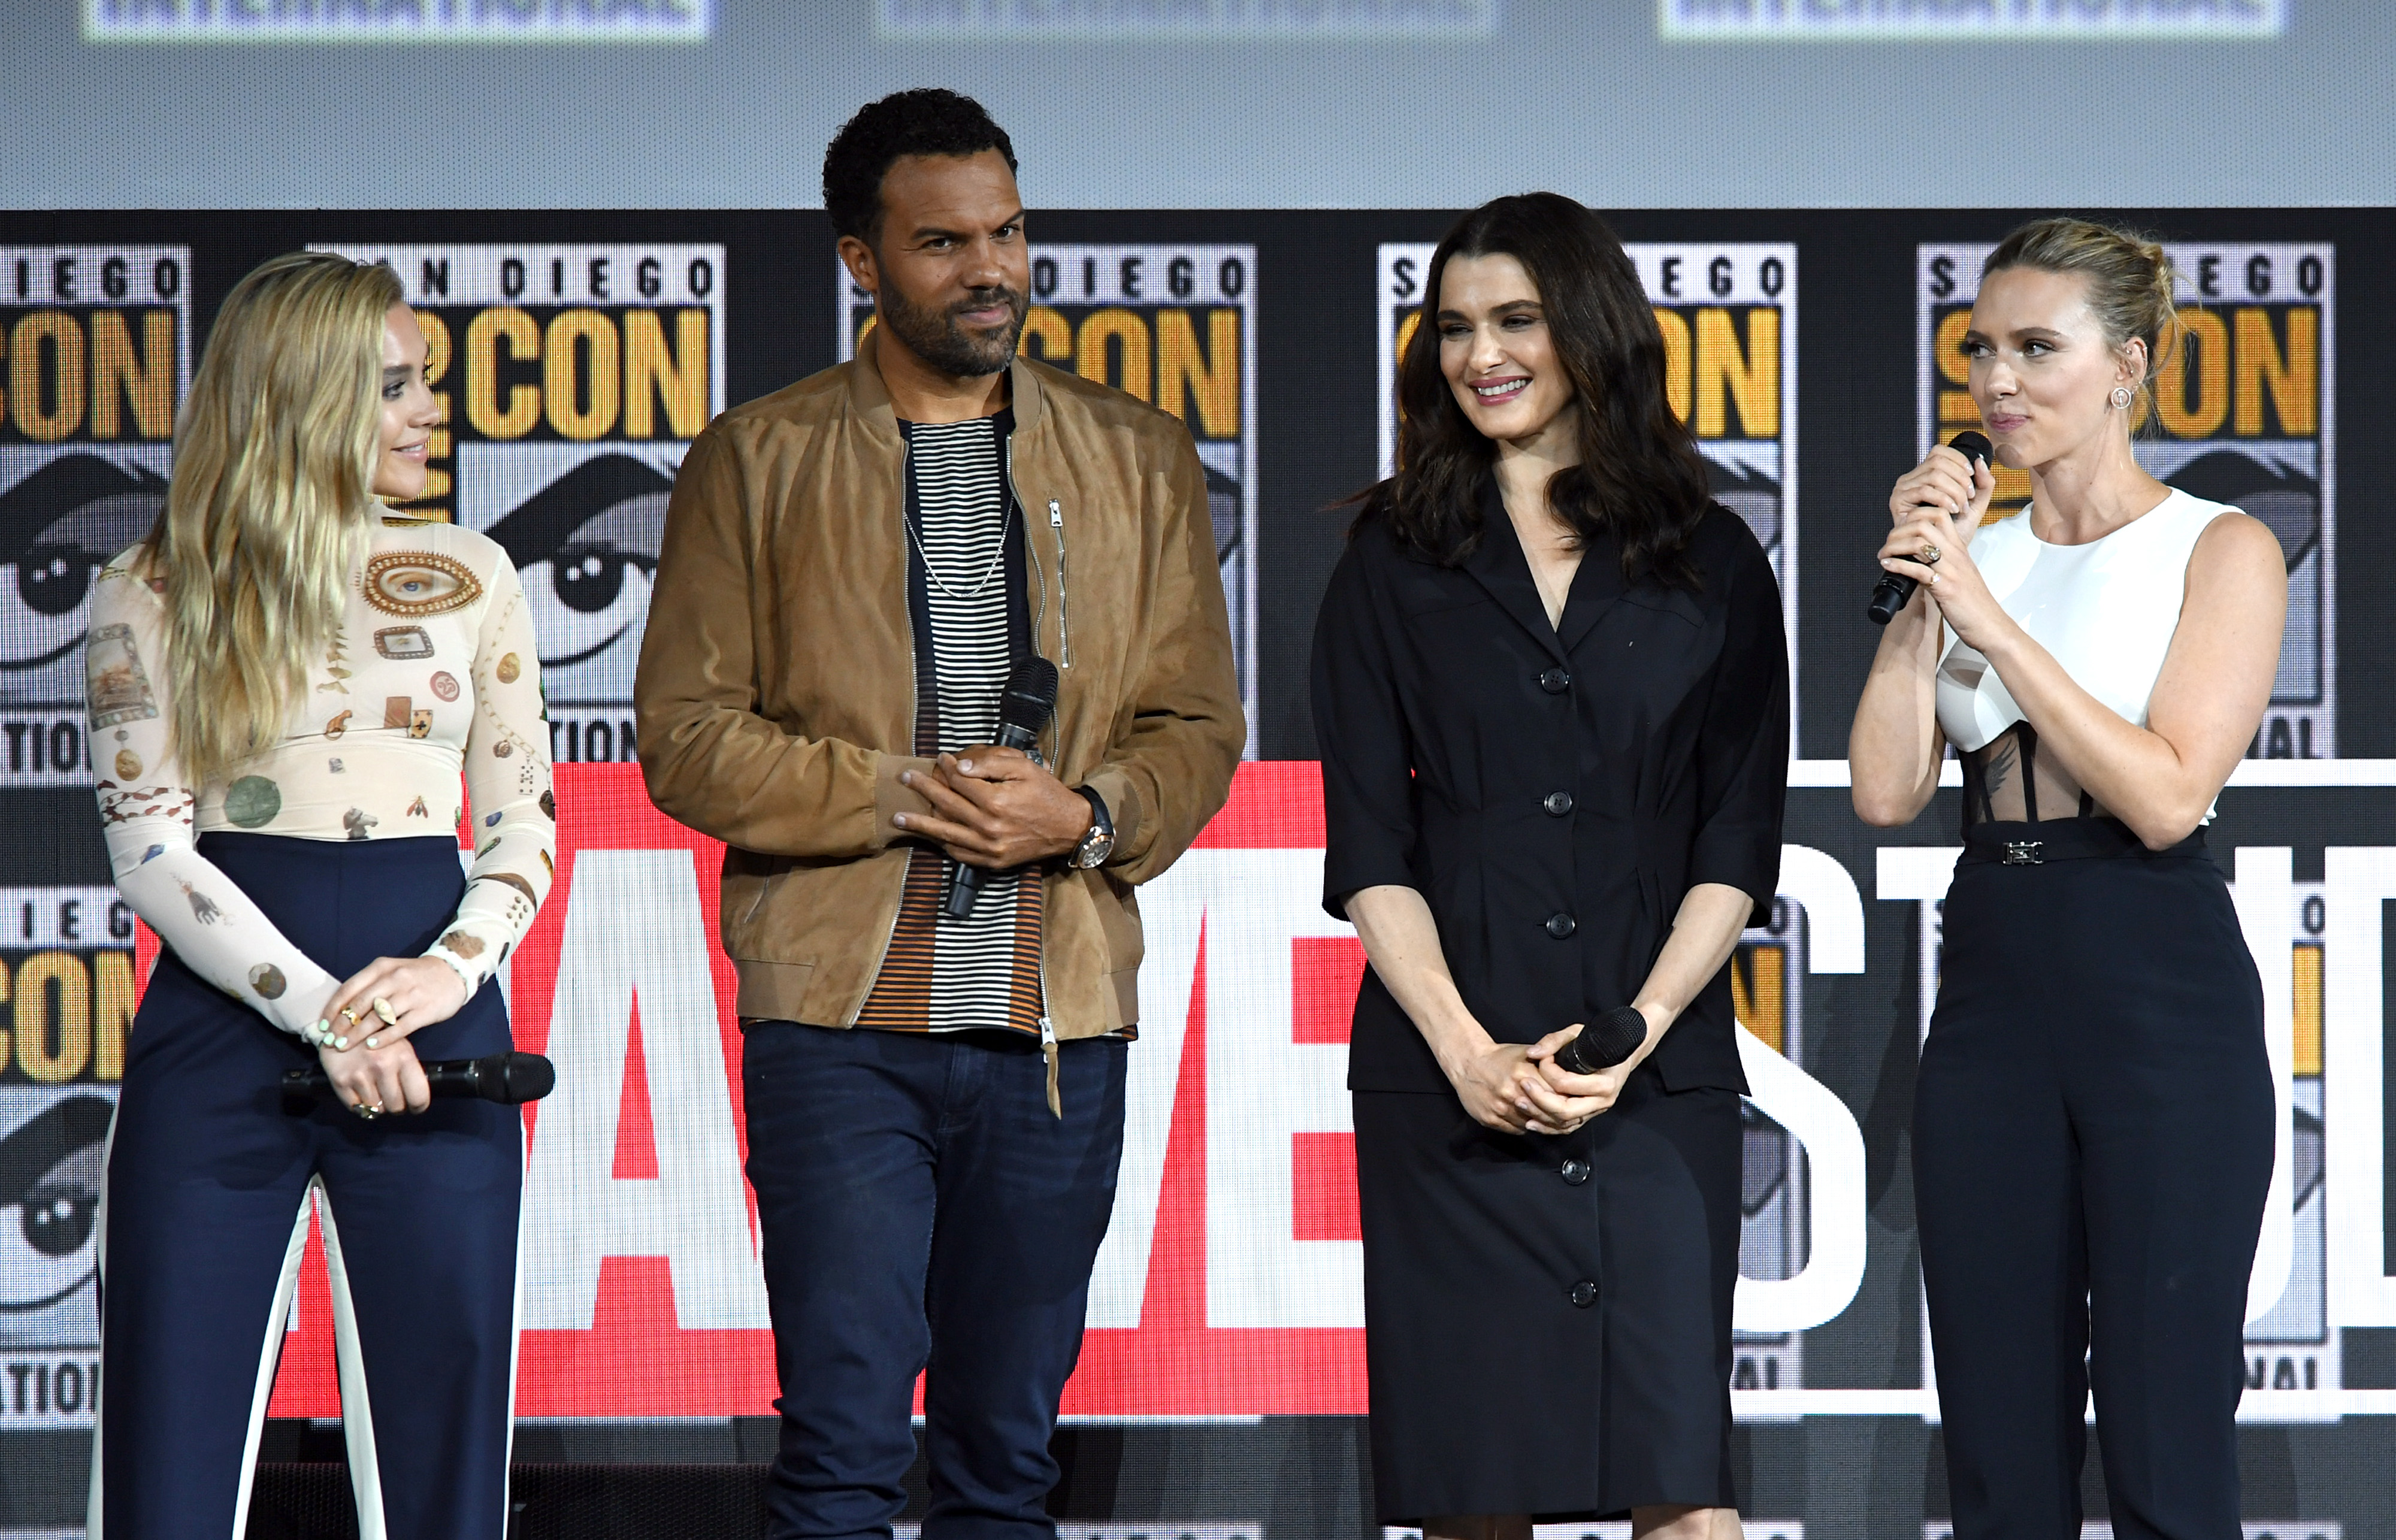 SAN DIEGO, CALIFORNIA - JULY 20: (L-R) Florence Pugh, O. T. Fagbenle, Rachel Weisz and Scarlett Johanssonn speak at the Marvel Studios Panel during 2019 Comic-Con International at San Diego Convention Center on July 20, 2019 in San Diego, California. (Photo by Kevin Winter/Getty Images)